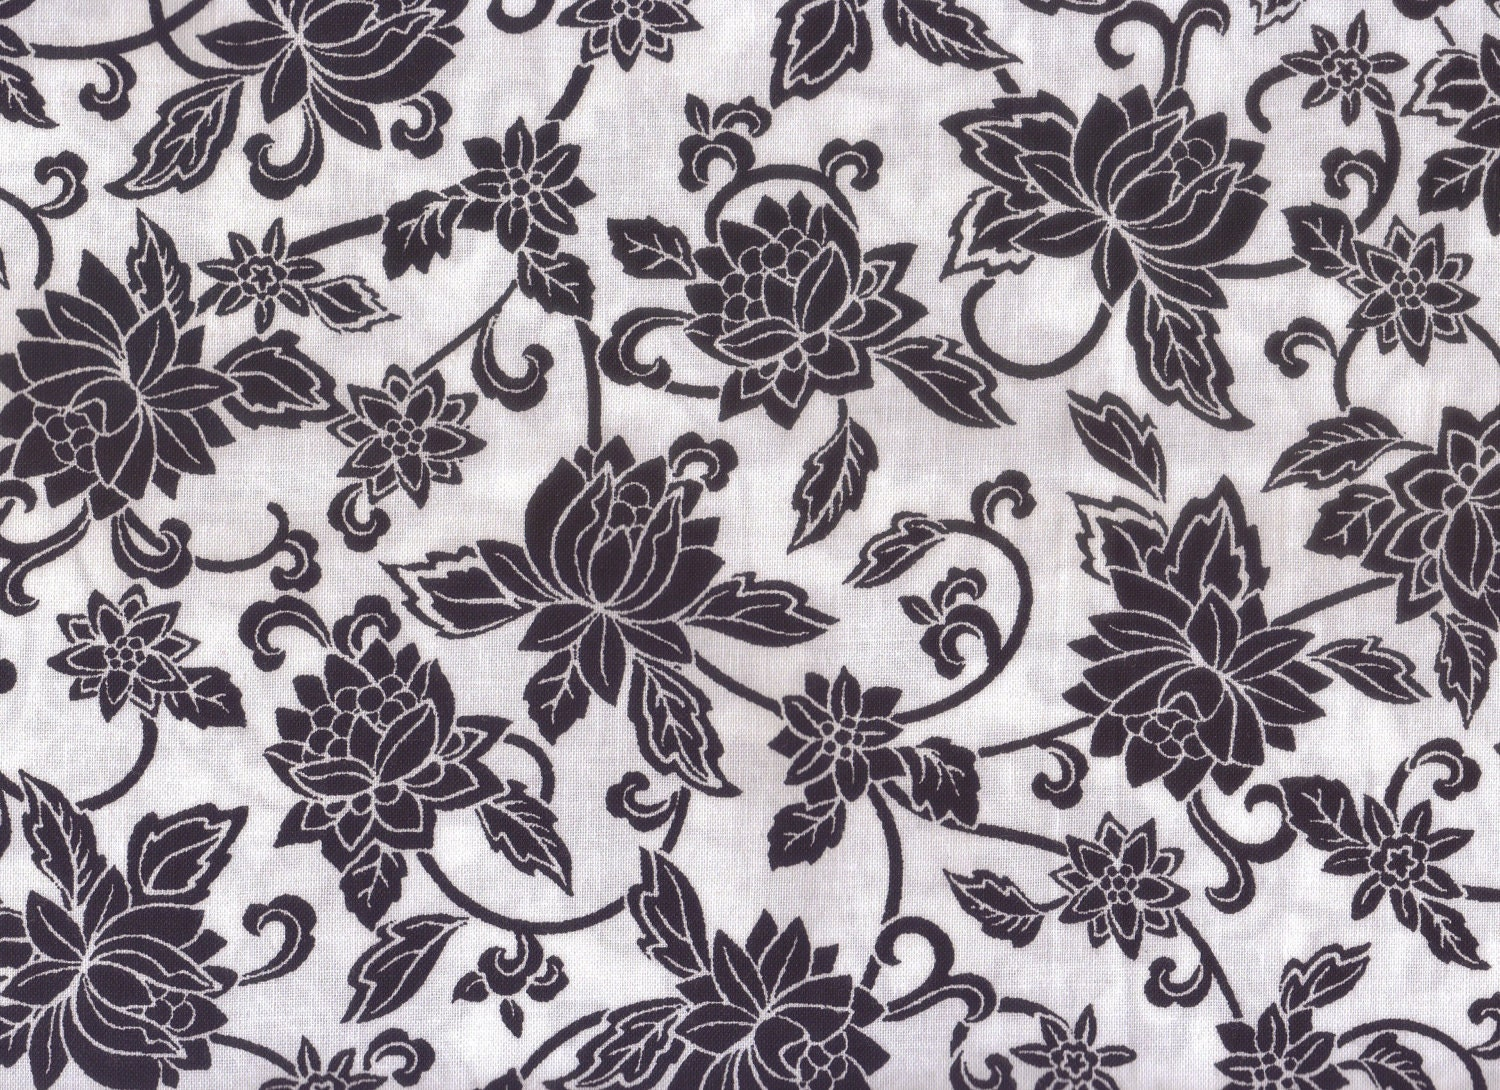 Floral Fabric Black and White Floral Fabric 1 yard Fabric